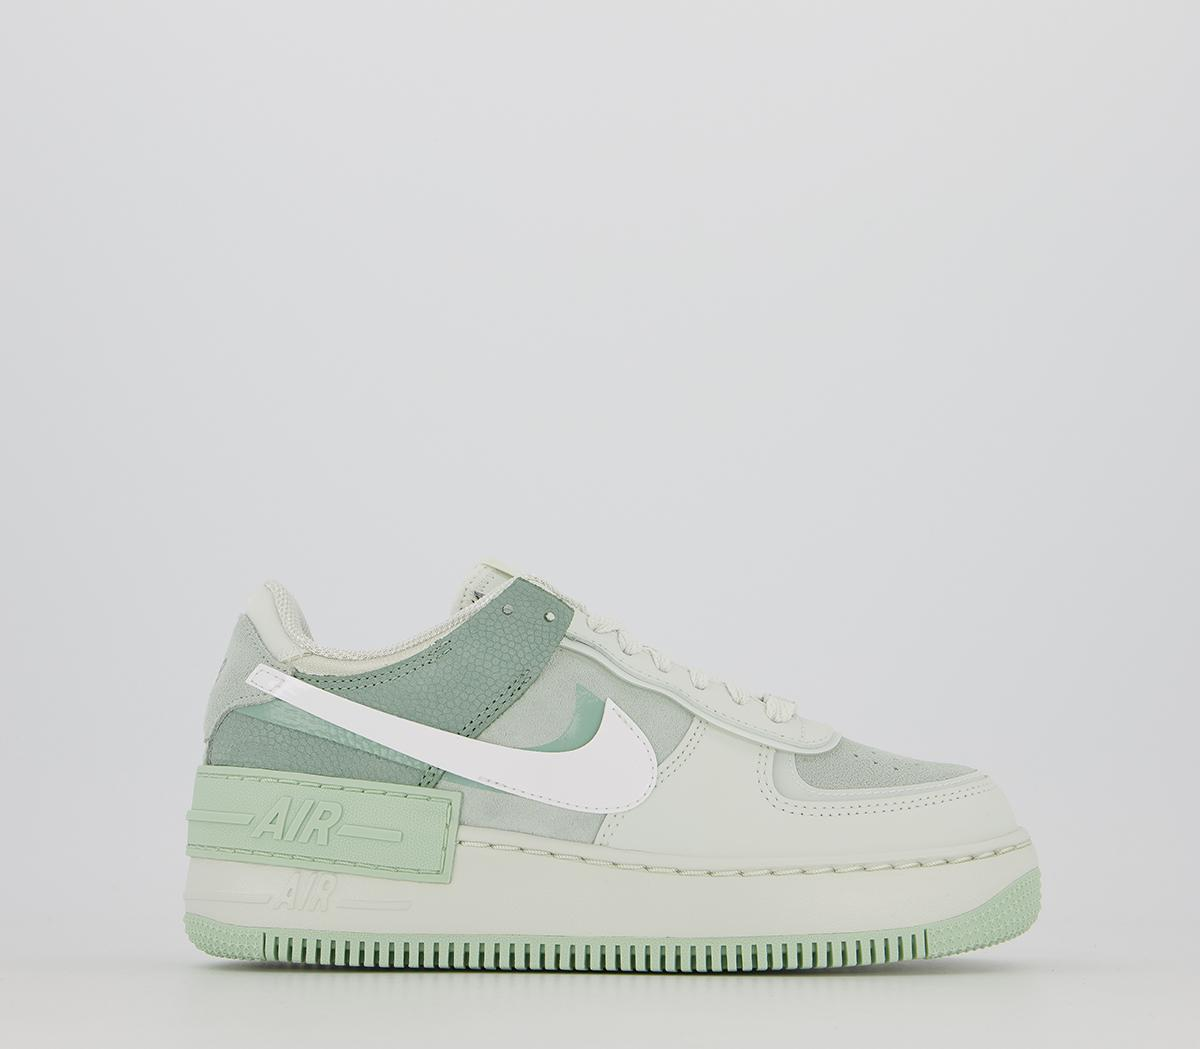 Nike Air Force 1 Shadow Trainers Spruce Aura White Pistachio Frost Hers Trainers Shop the latest women's nike air force 1 shadow trainer release dates, curated from the best sneaker shops across europe. air force 1 shadow trainers